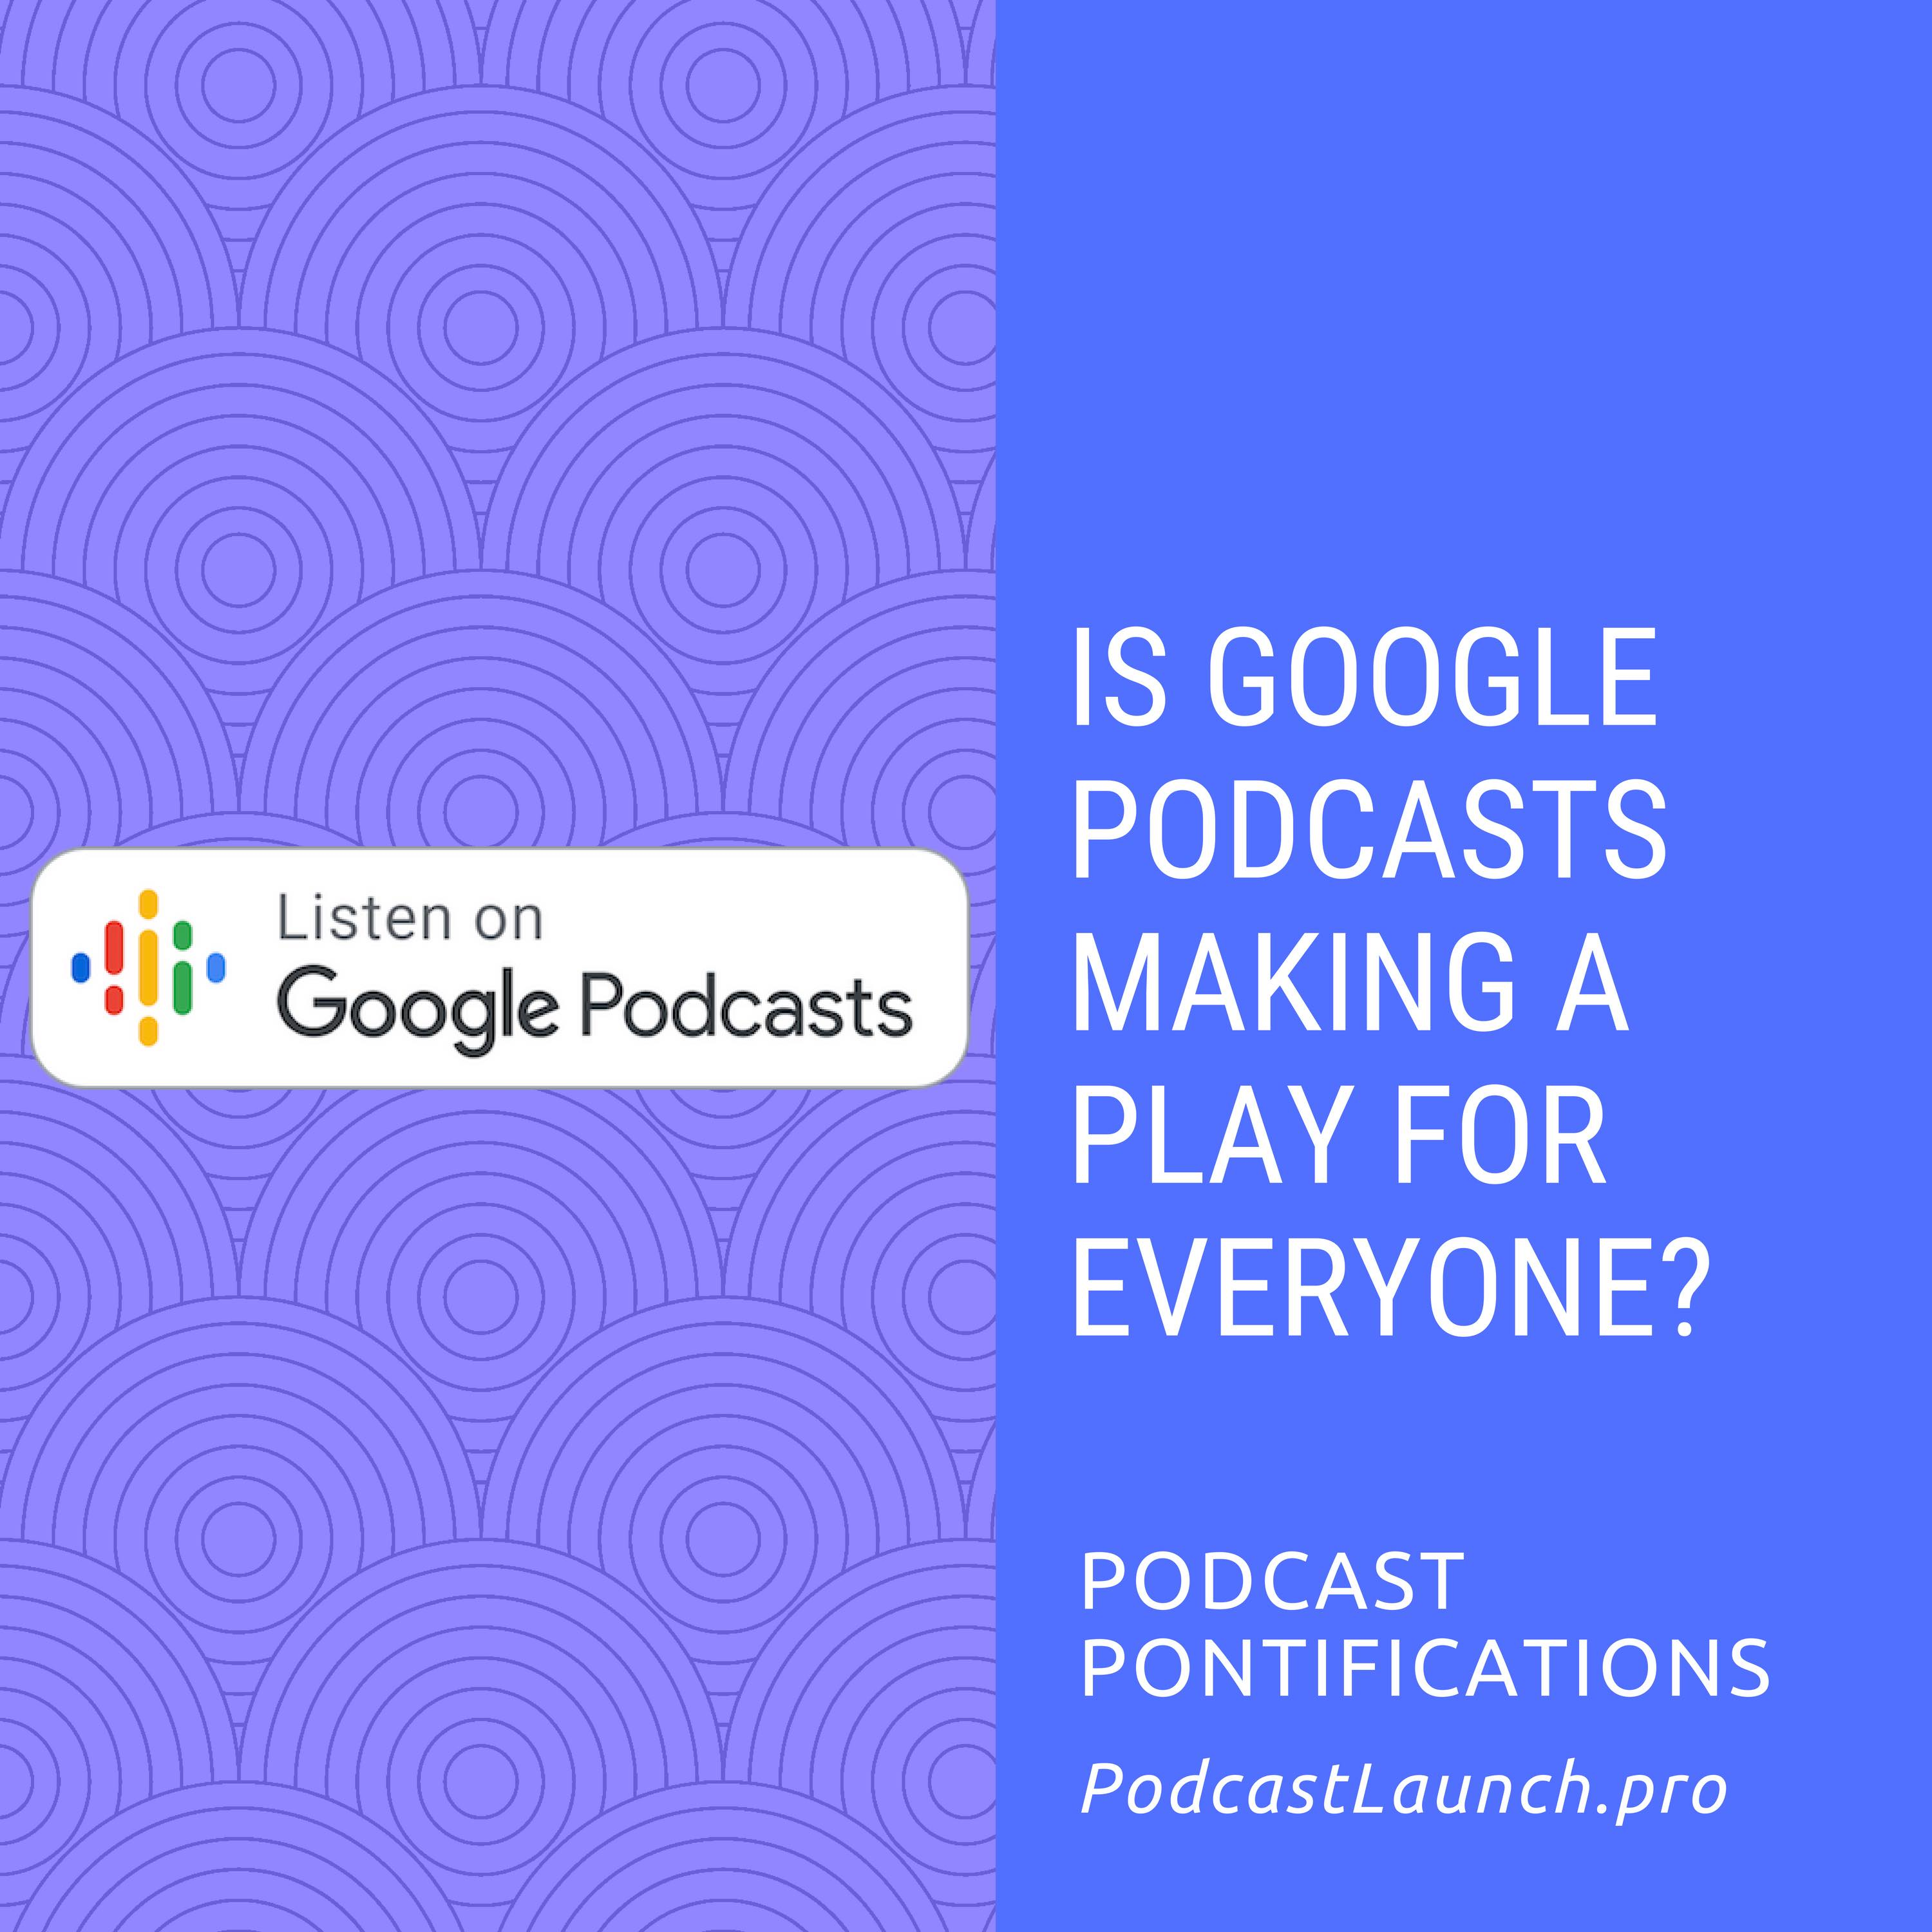 Is Google Podcasts Making A Play For Everyone?